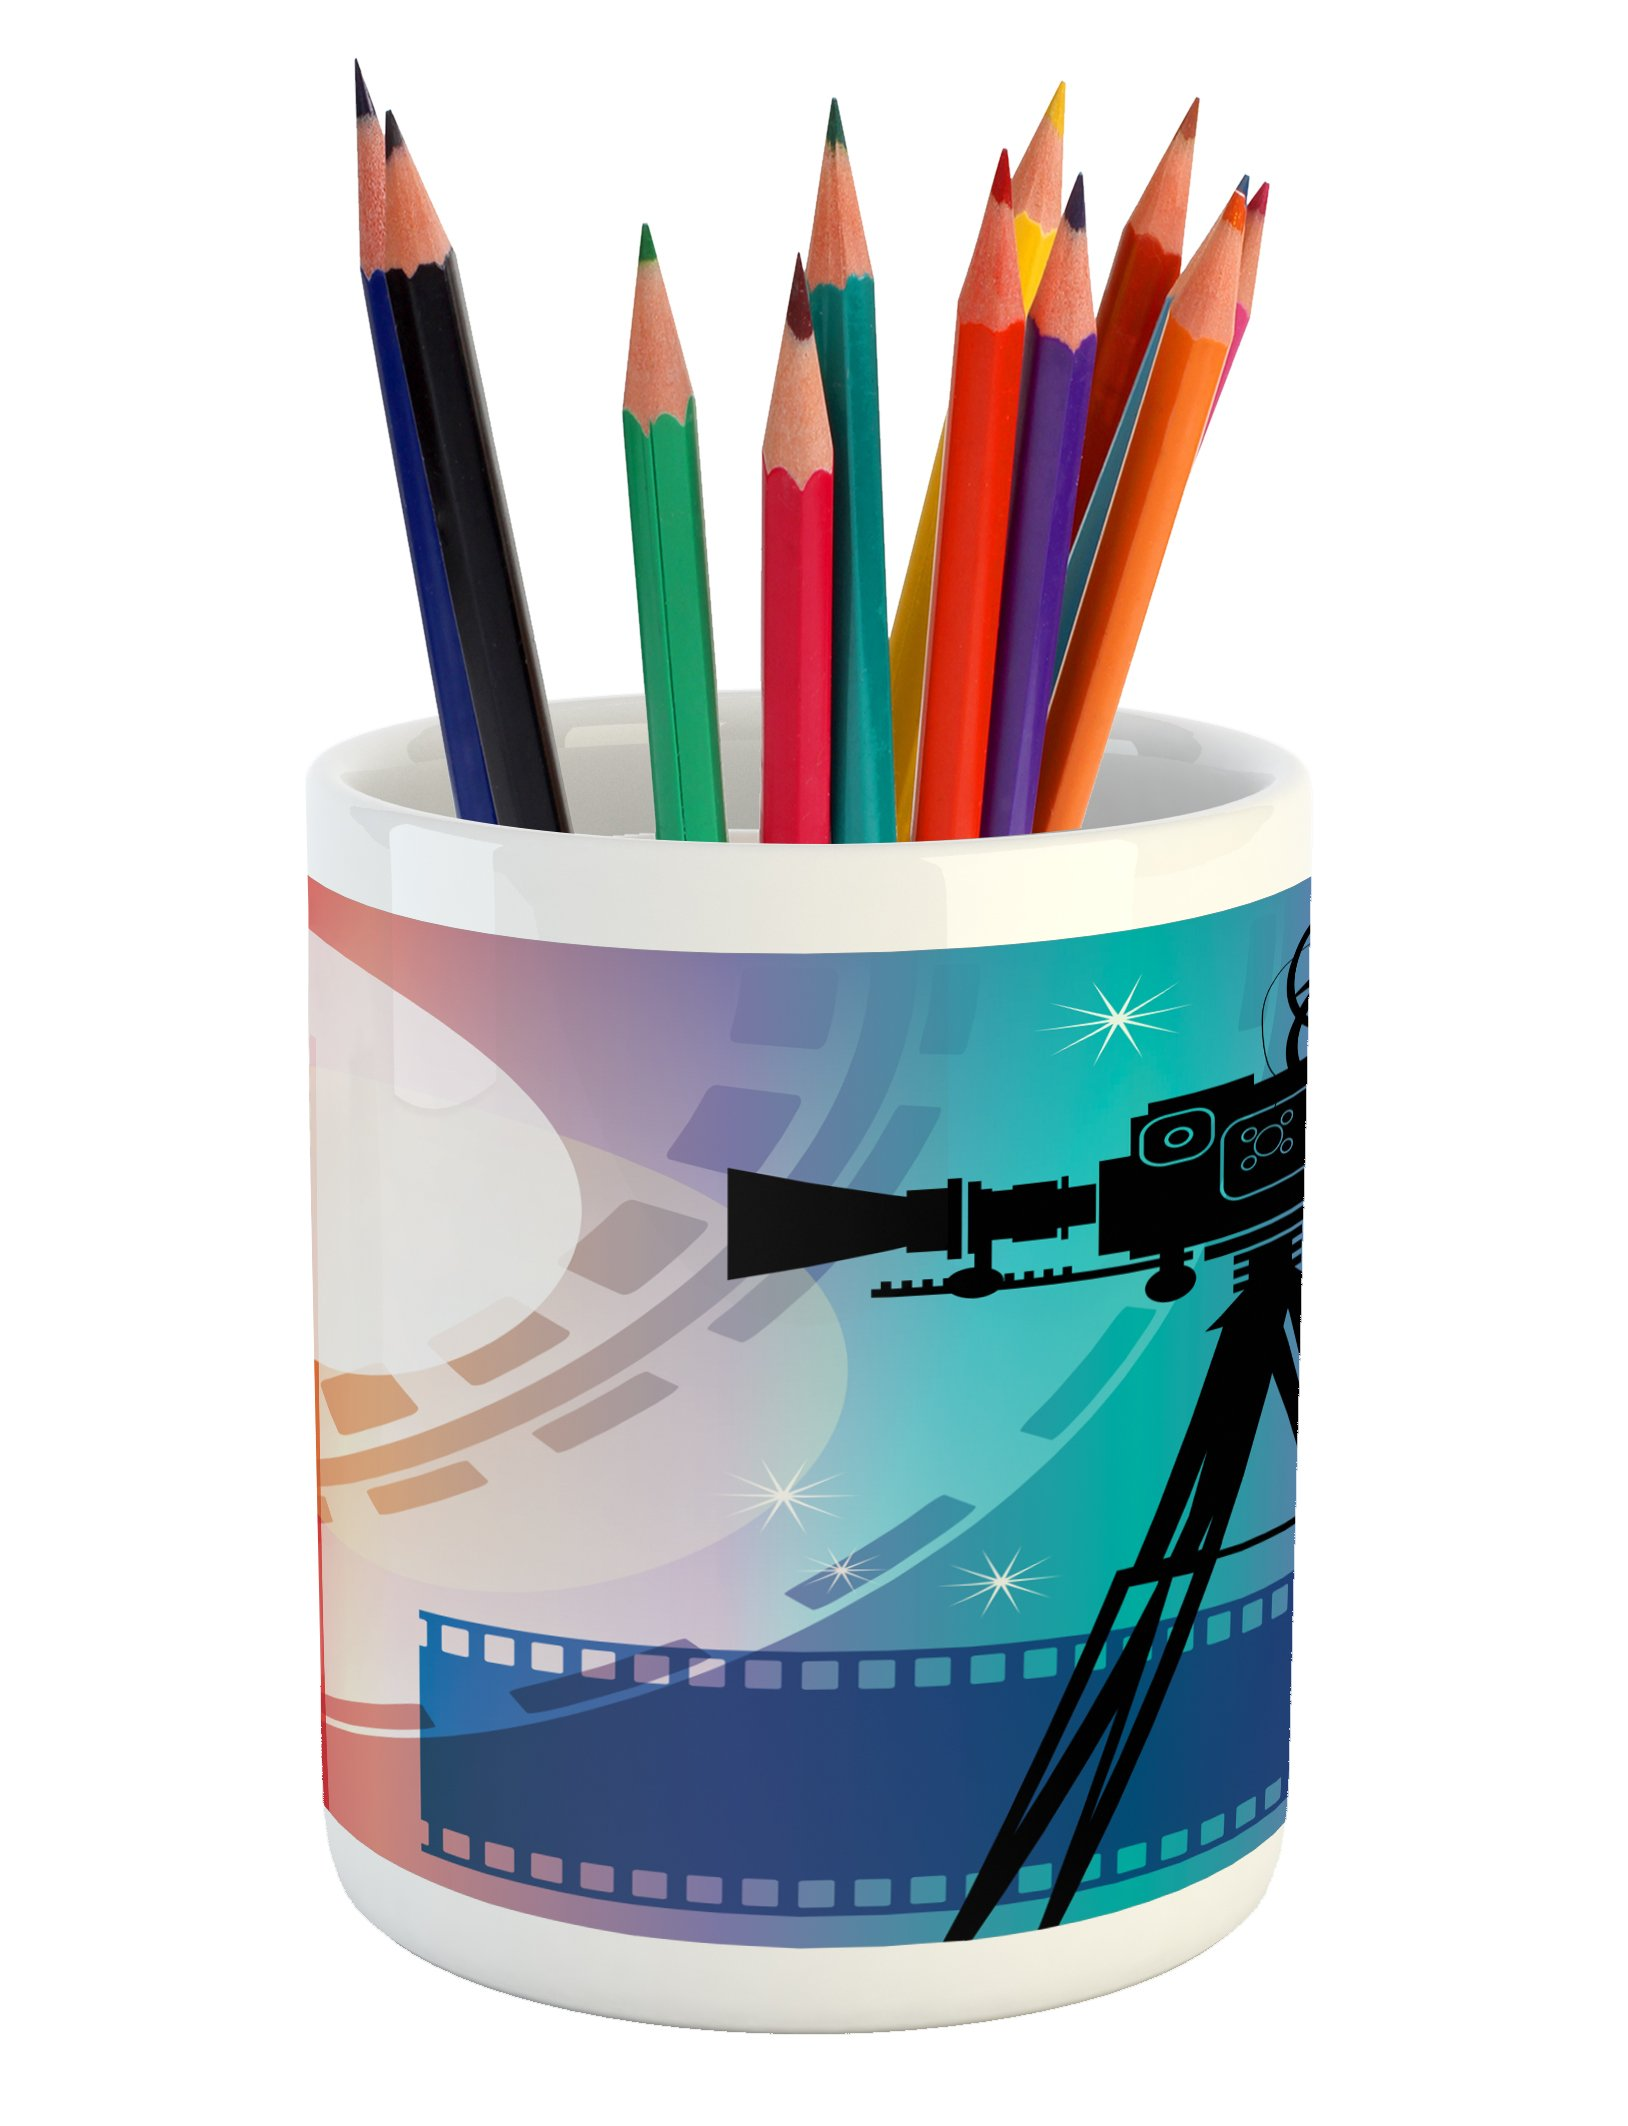 Ambesonne Cinema Pencil Pen Holder, Colorful Projector Silhouette with Movie Reel Vintage Design Entertainment Theme, Printed Ceramic Pencil Pen Holder for Desk Office Accessory, Multicolor